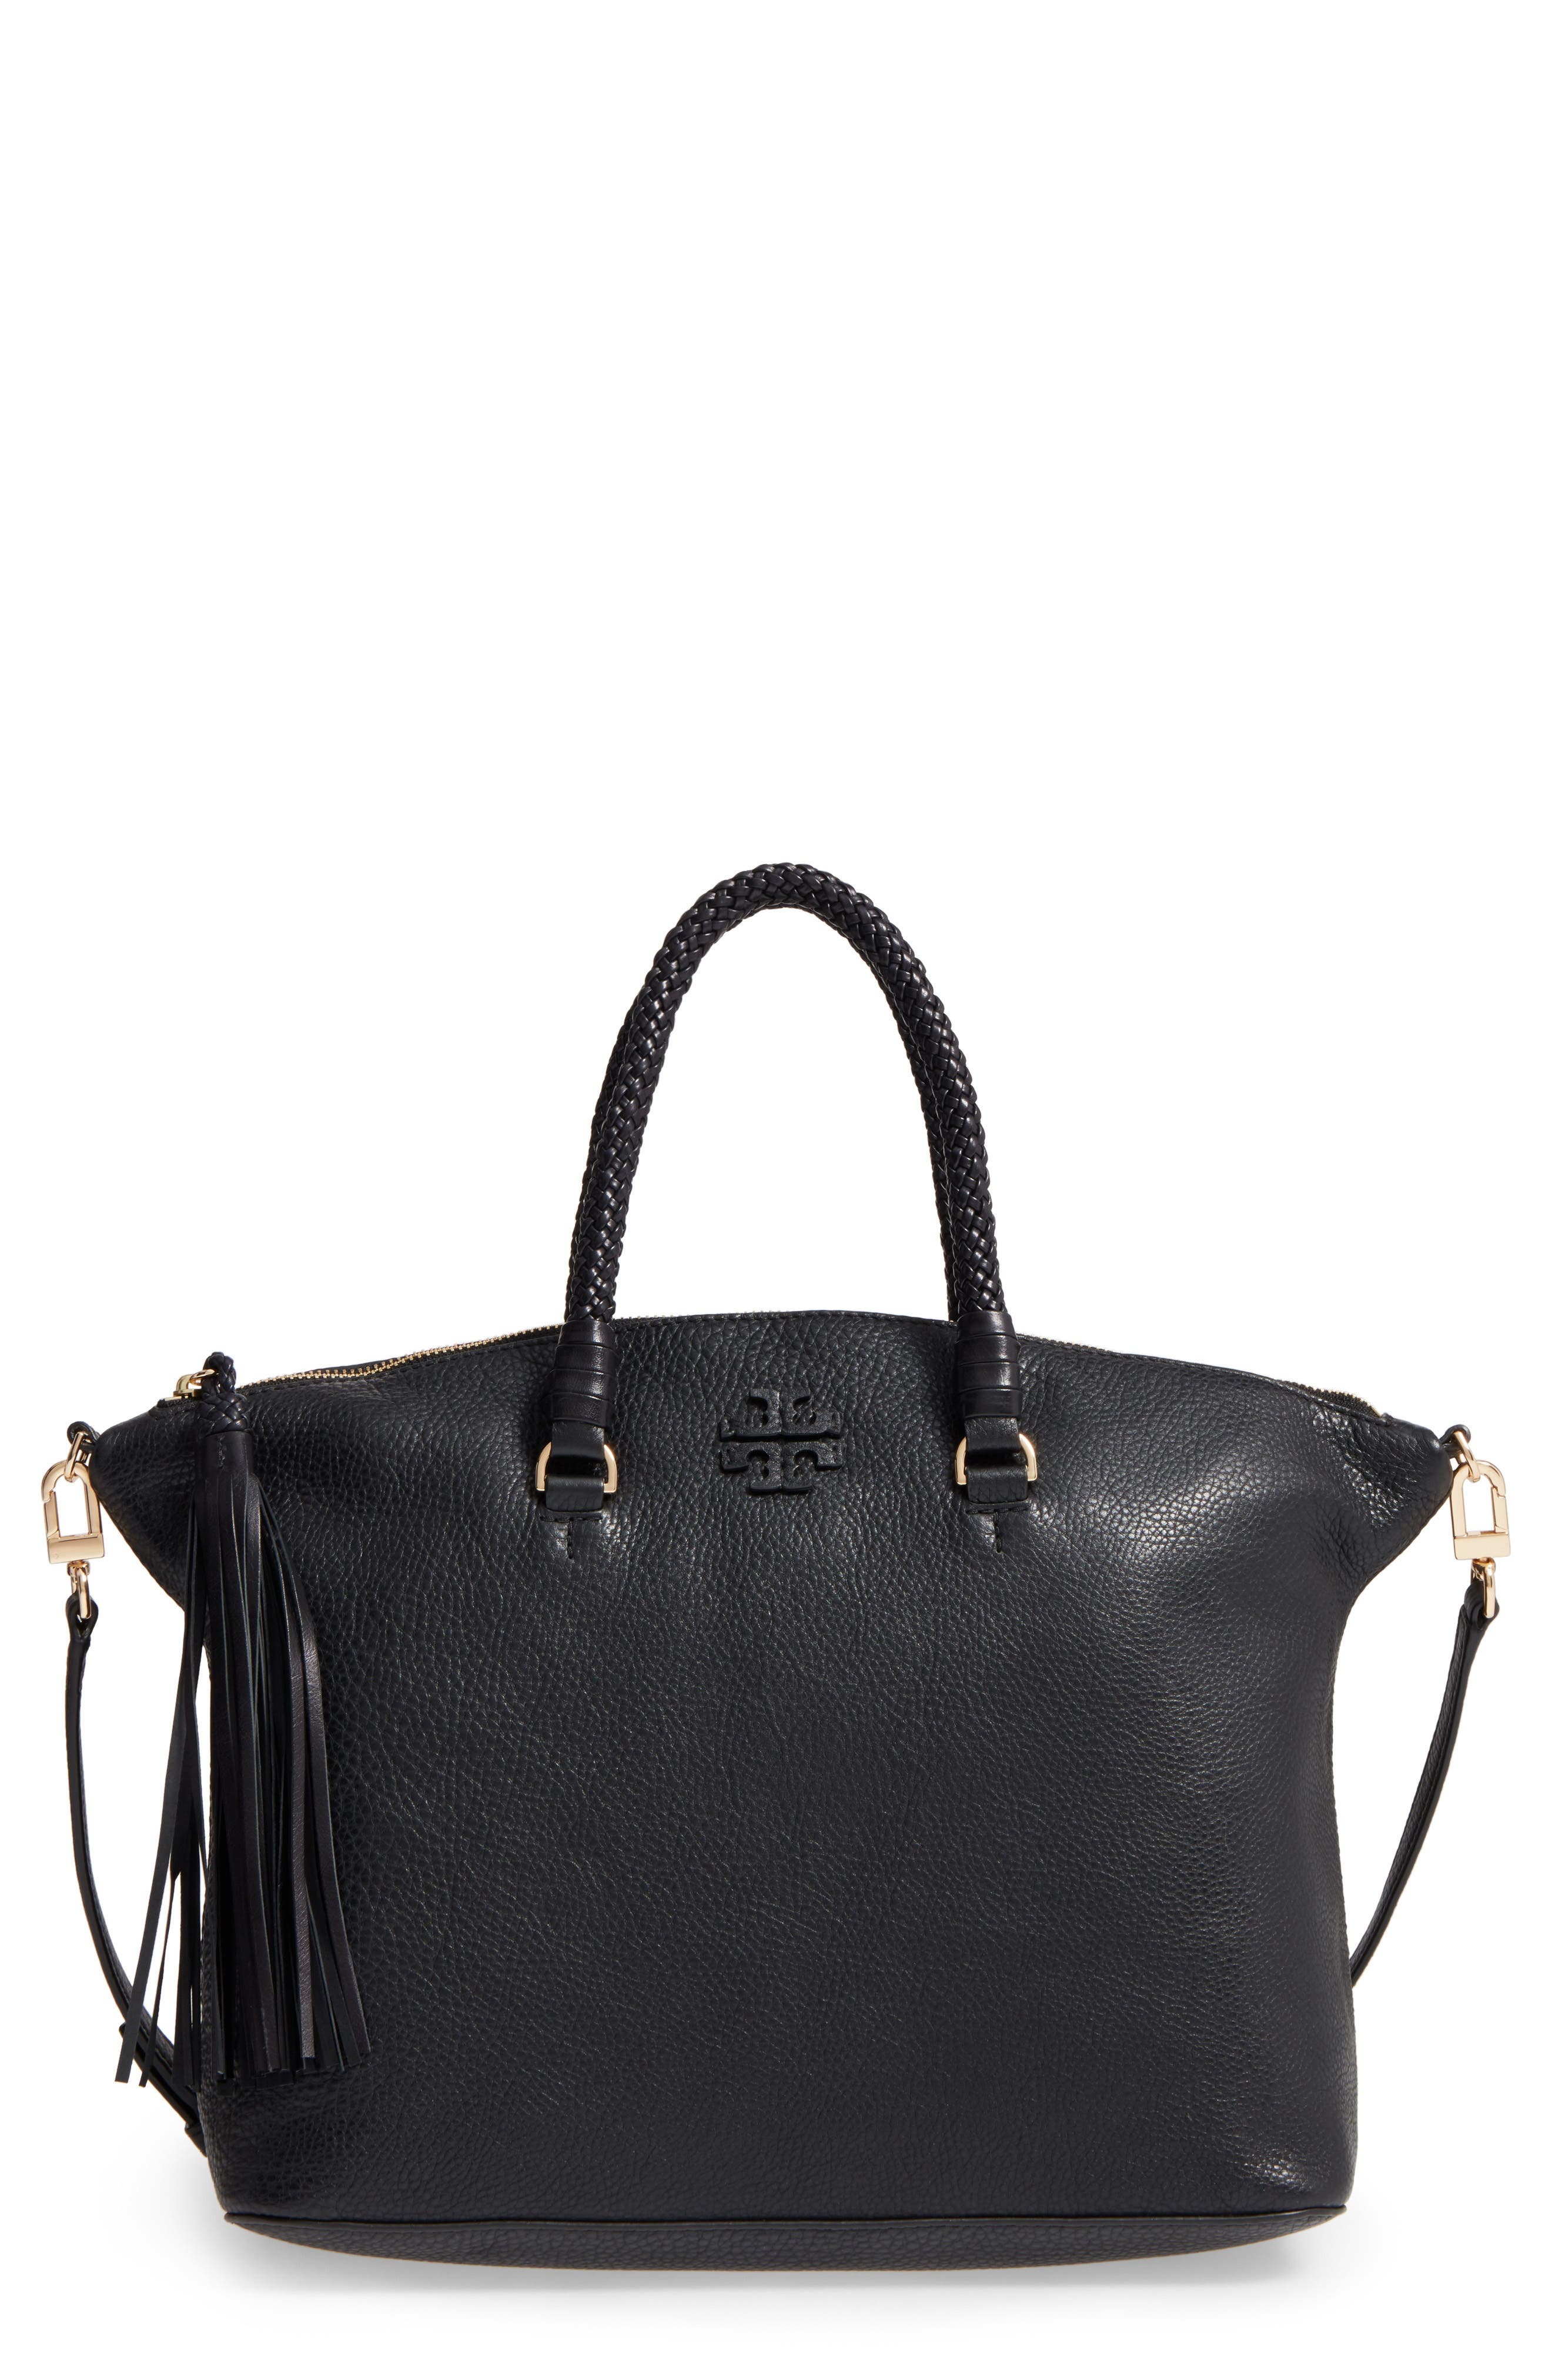 Alternate Image 1 Selected - Tory Burch Taylor Leather Satchel